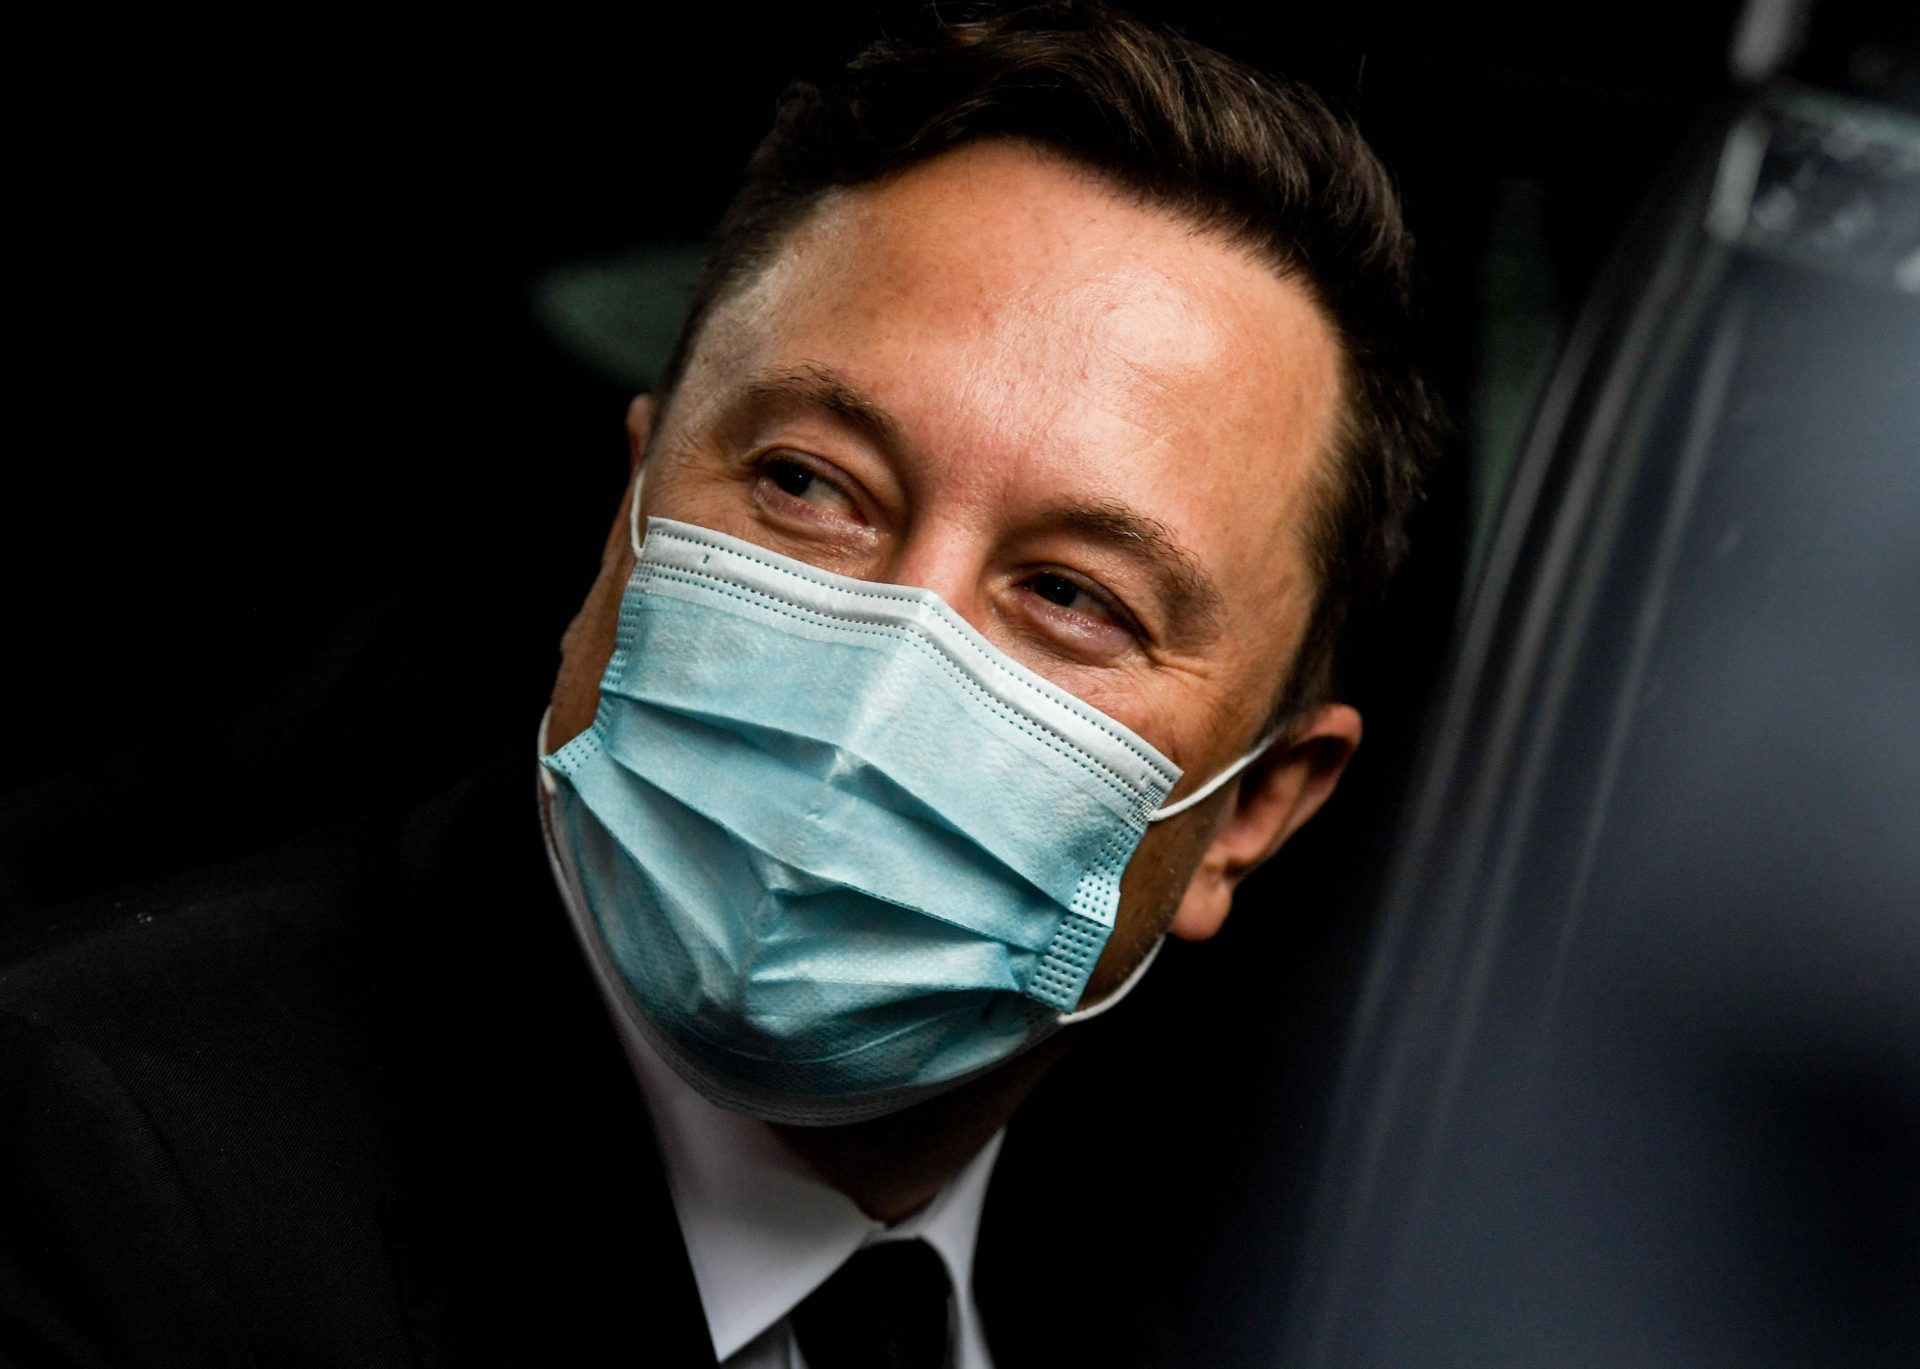 Mandatory Credit: Photo by FILIP SINGER/POOL/EPA-EFE/Shutterstock (10763436v)Tesla and SpaceX CEO Elon Musk leaves the Westhafen Event & Convention Center after attending the CDU/CSU faction meeting Berlin, Germany, 02 September 2020.